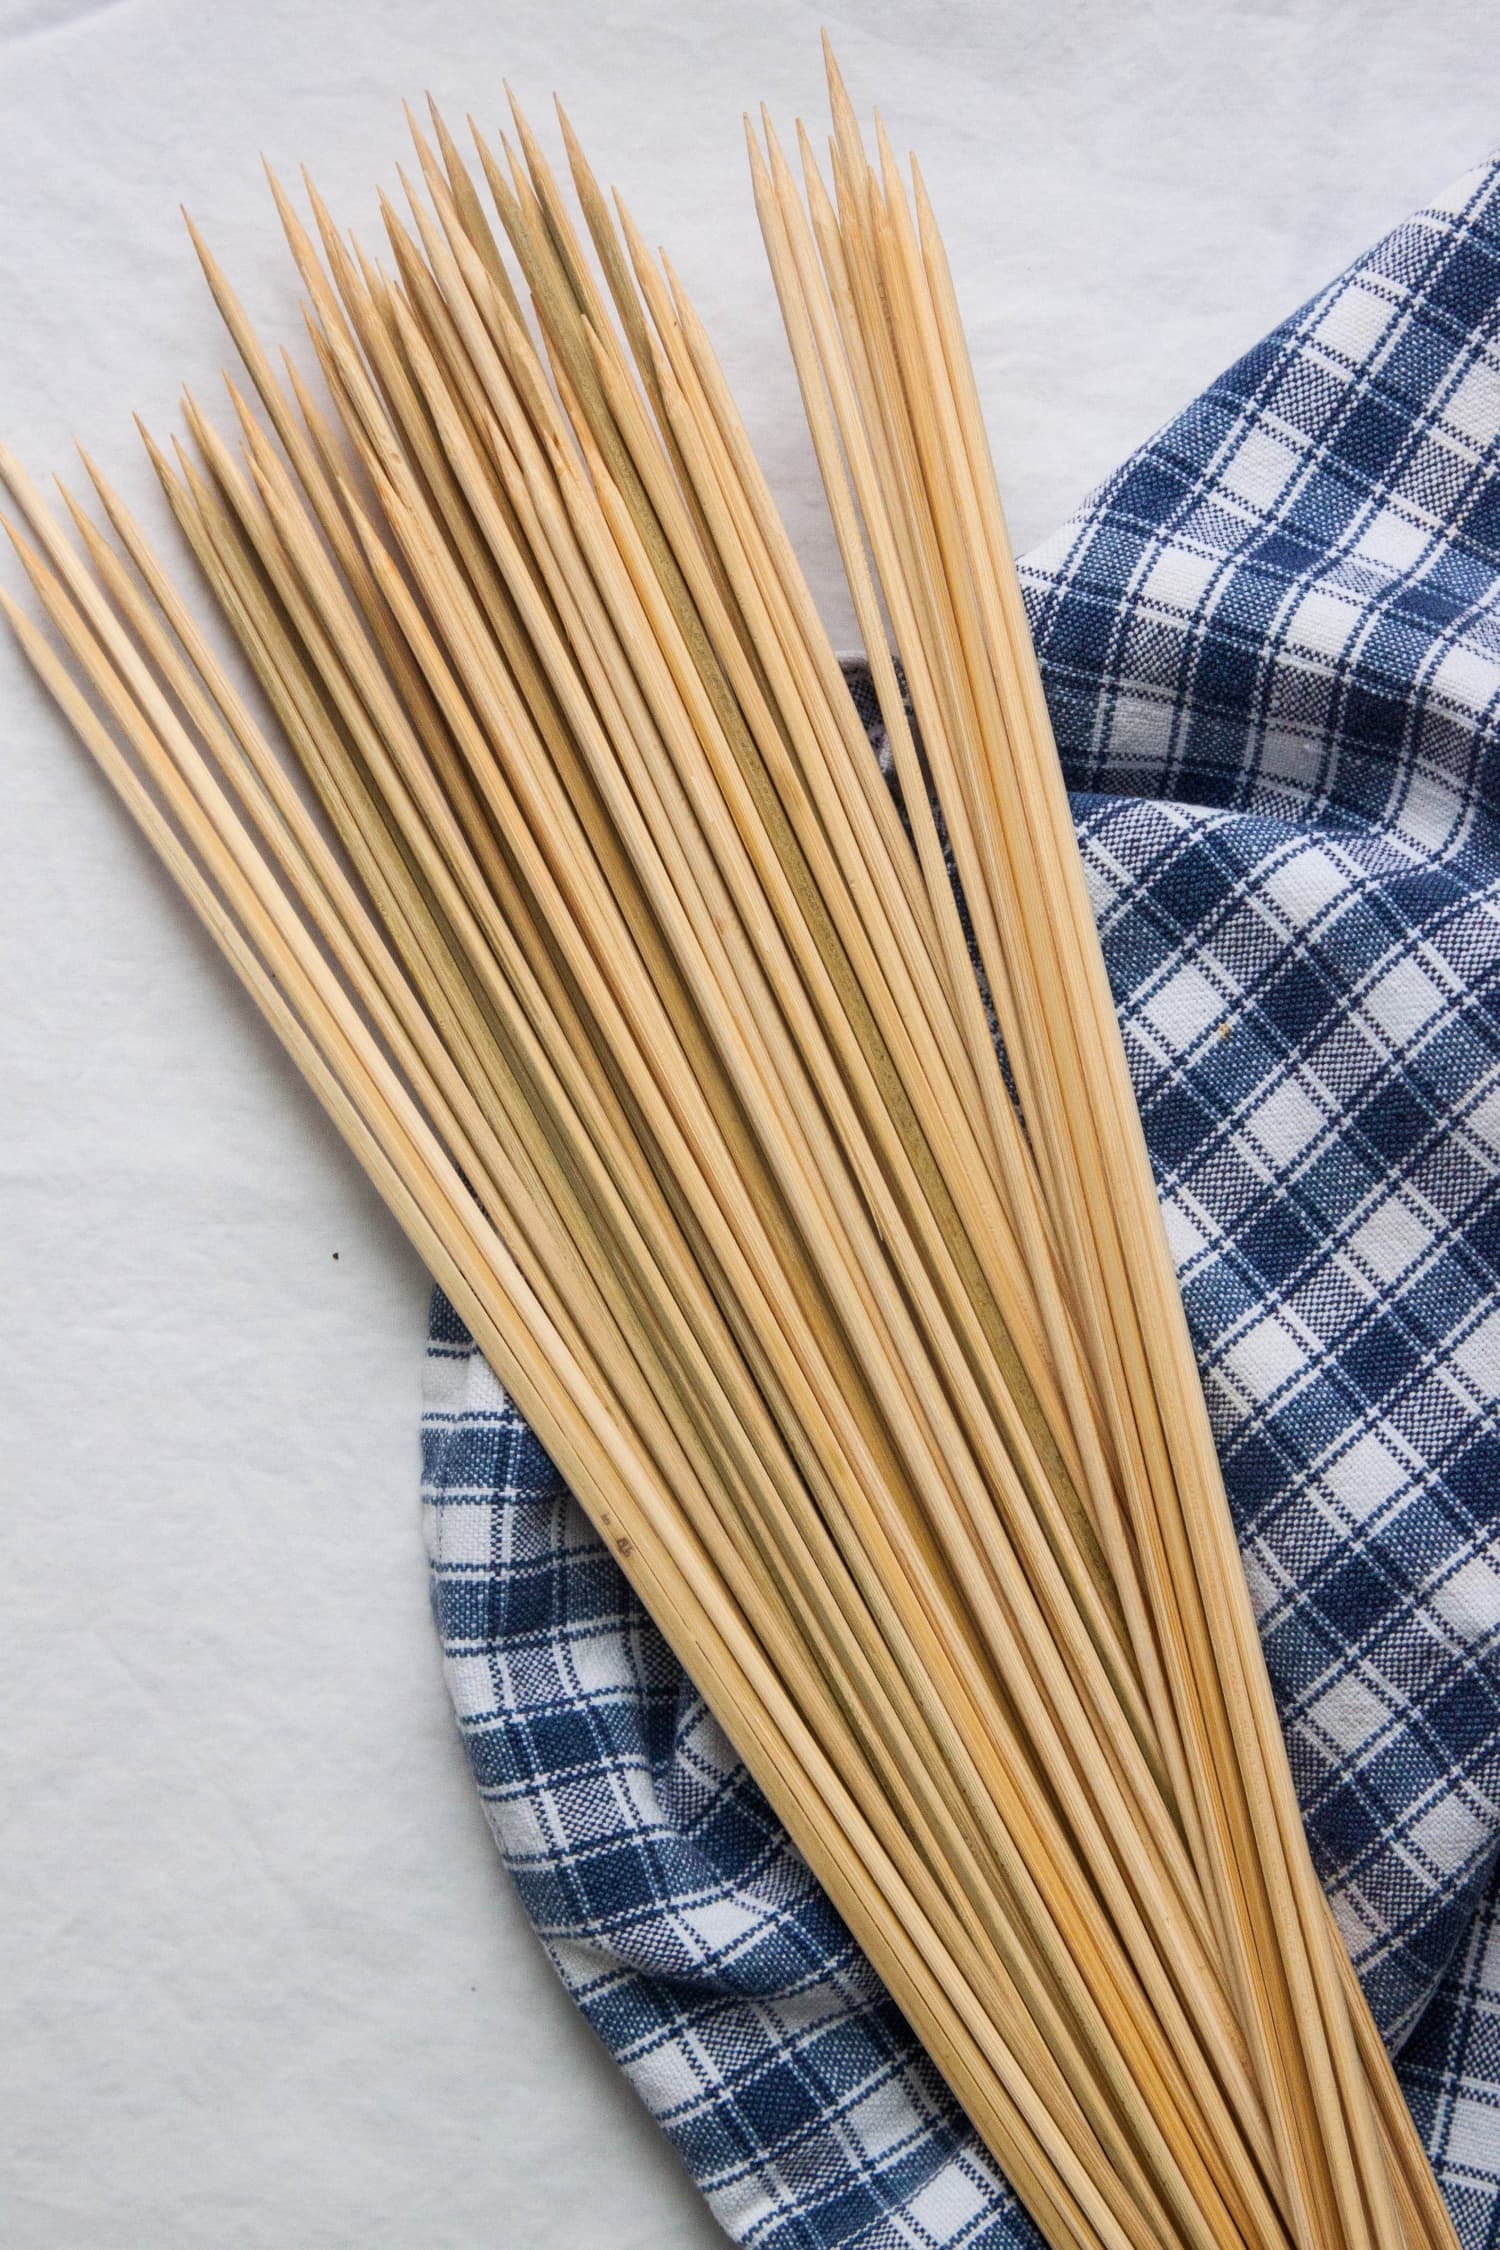 A Simple Trick for Always Having Soaked Wooden Skewers on Hand